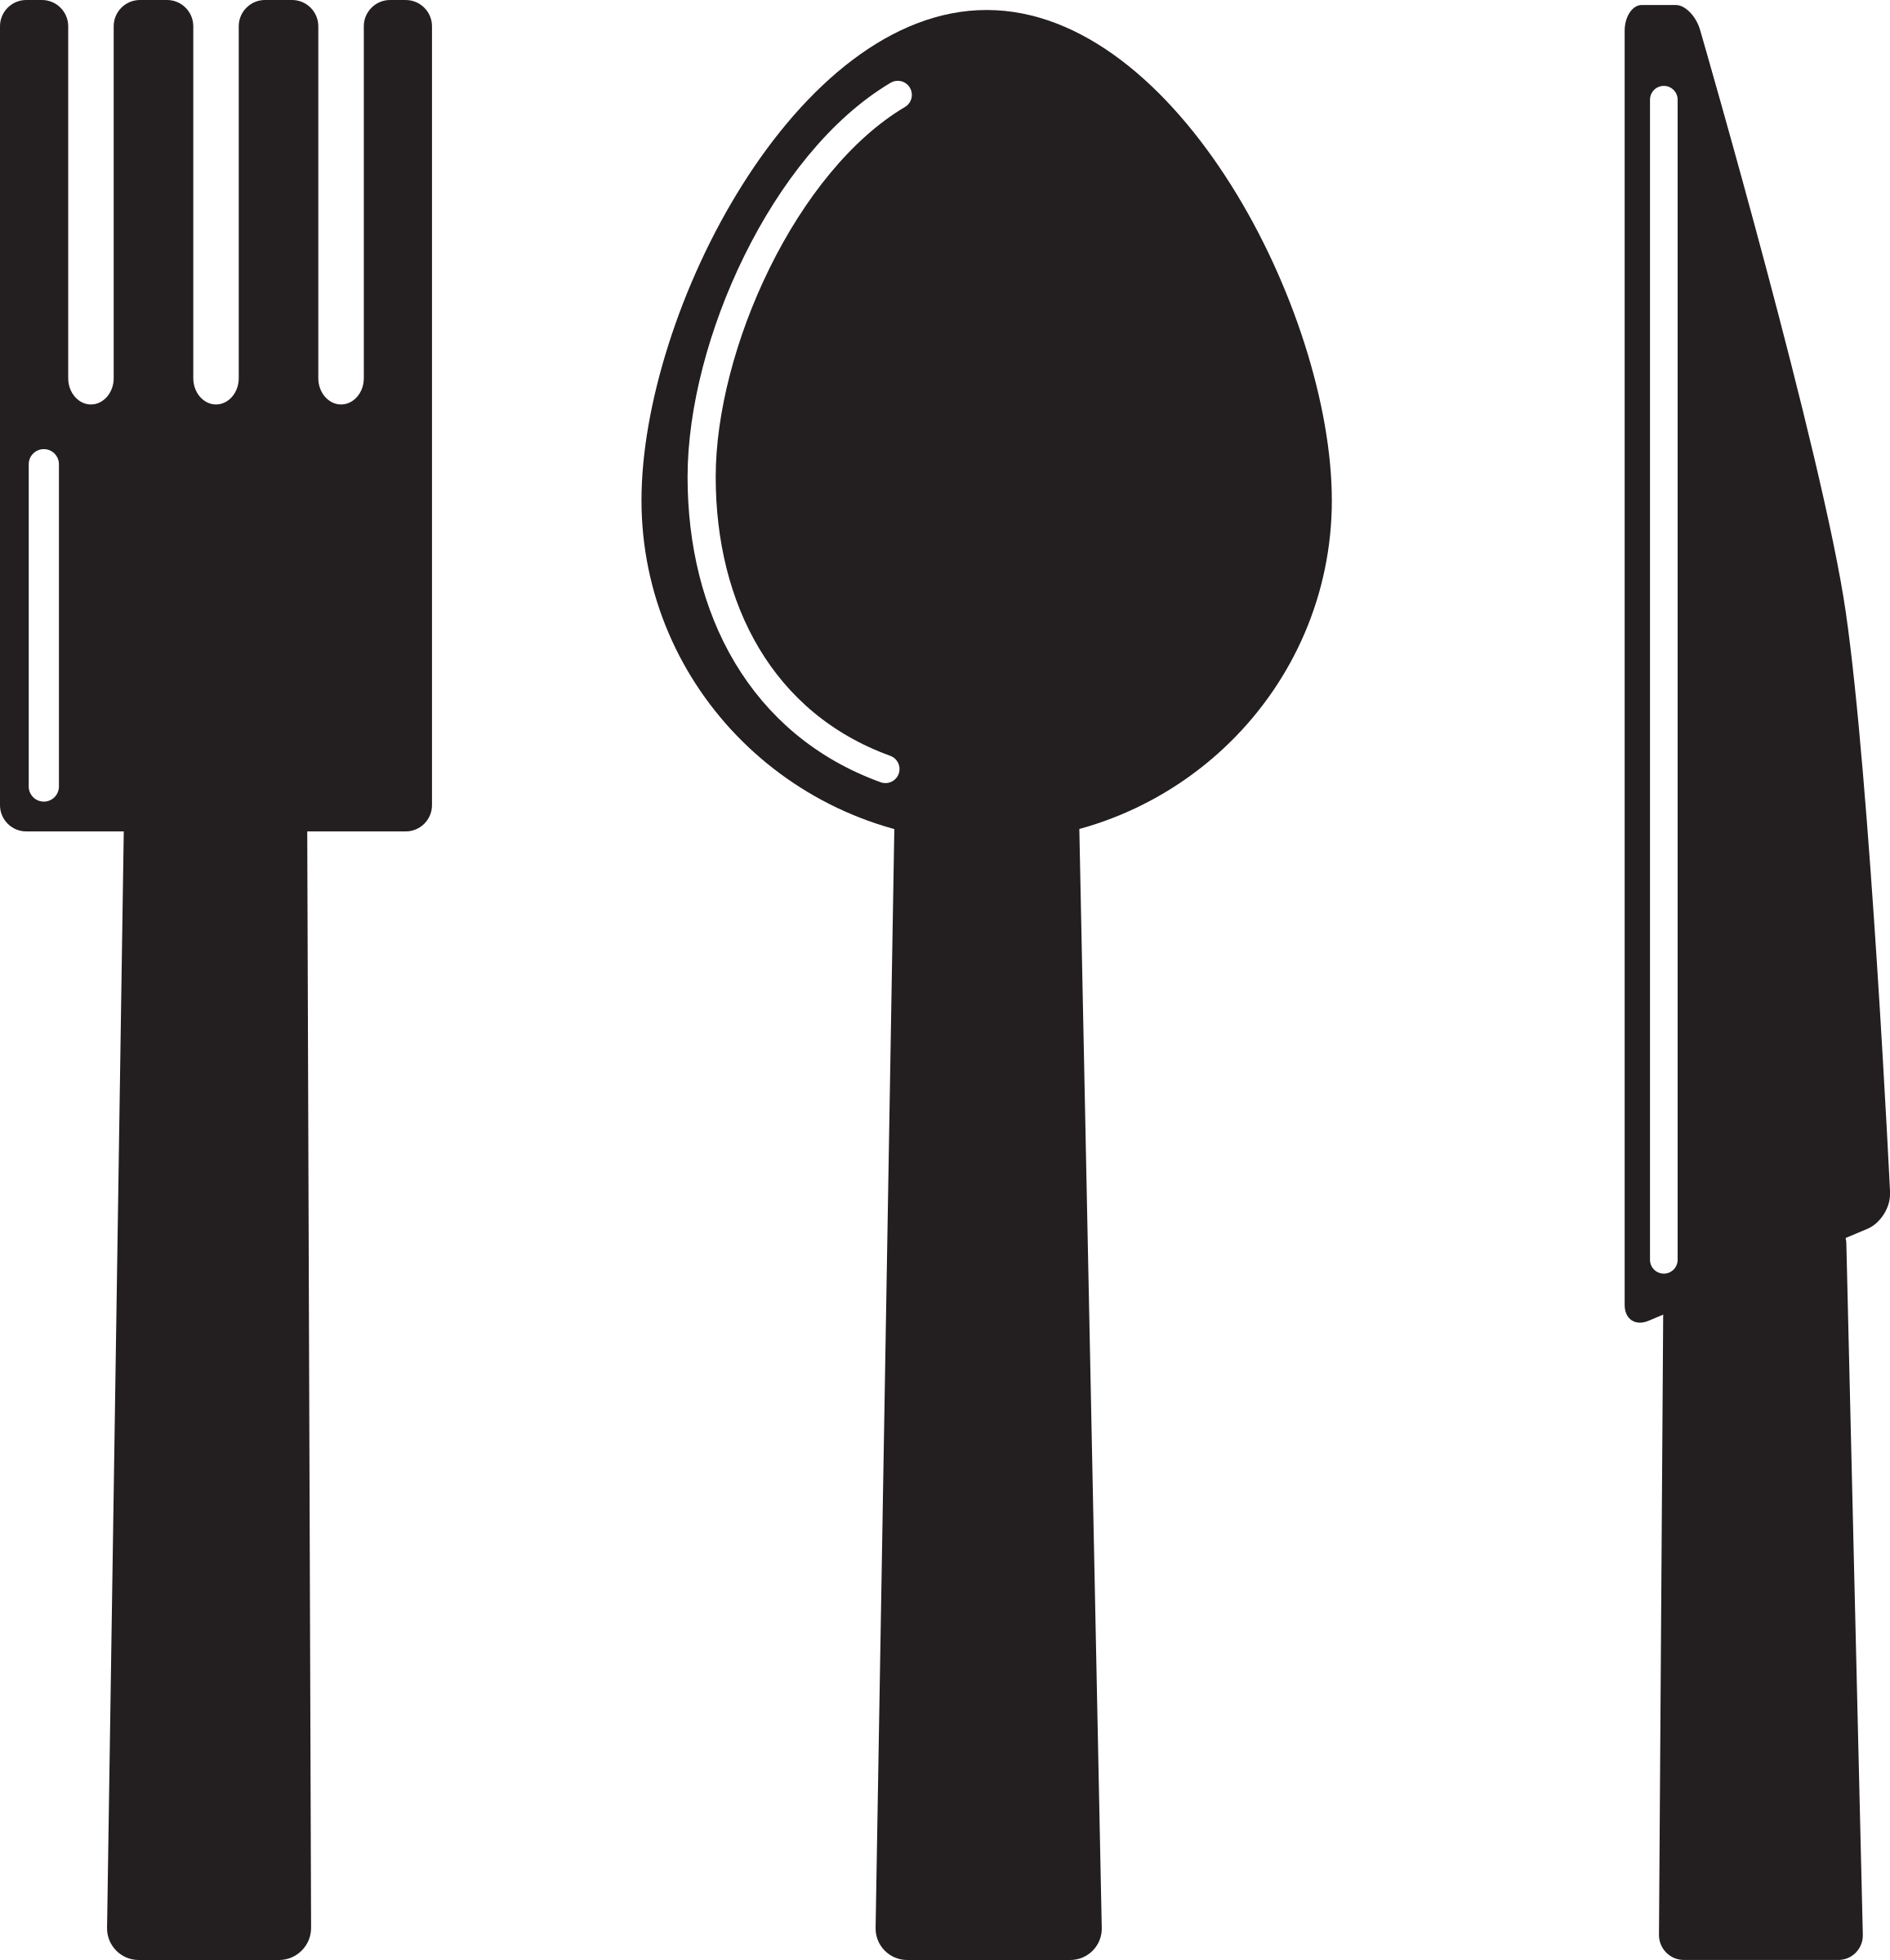 Kitchen Spoon Clipart - Clipart Kid